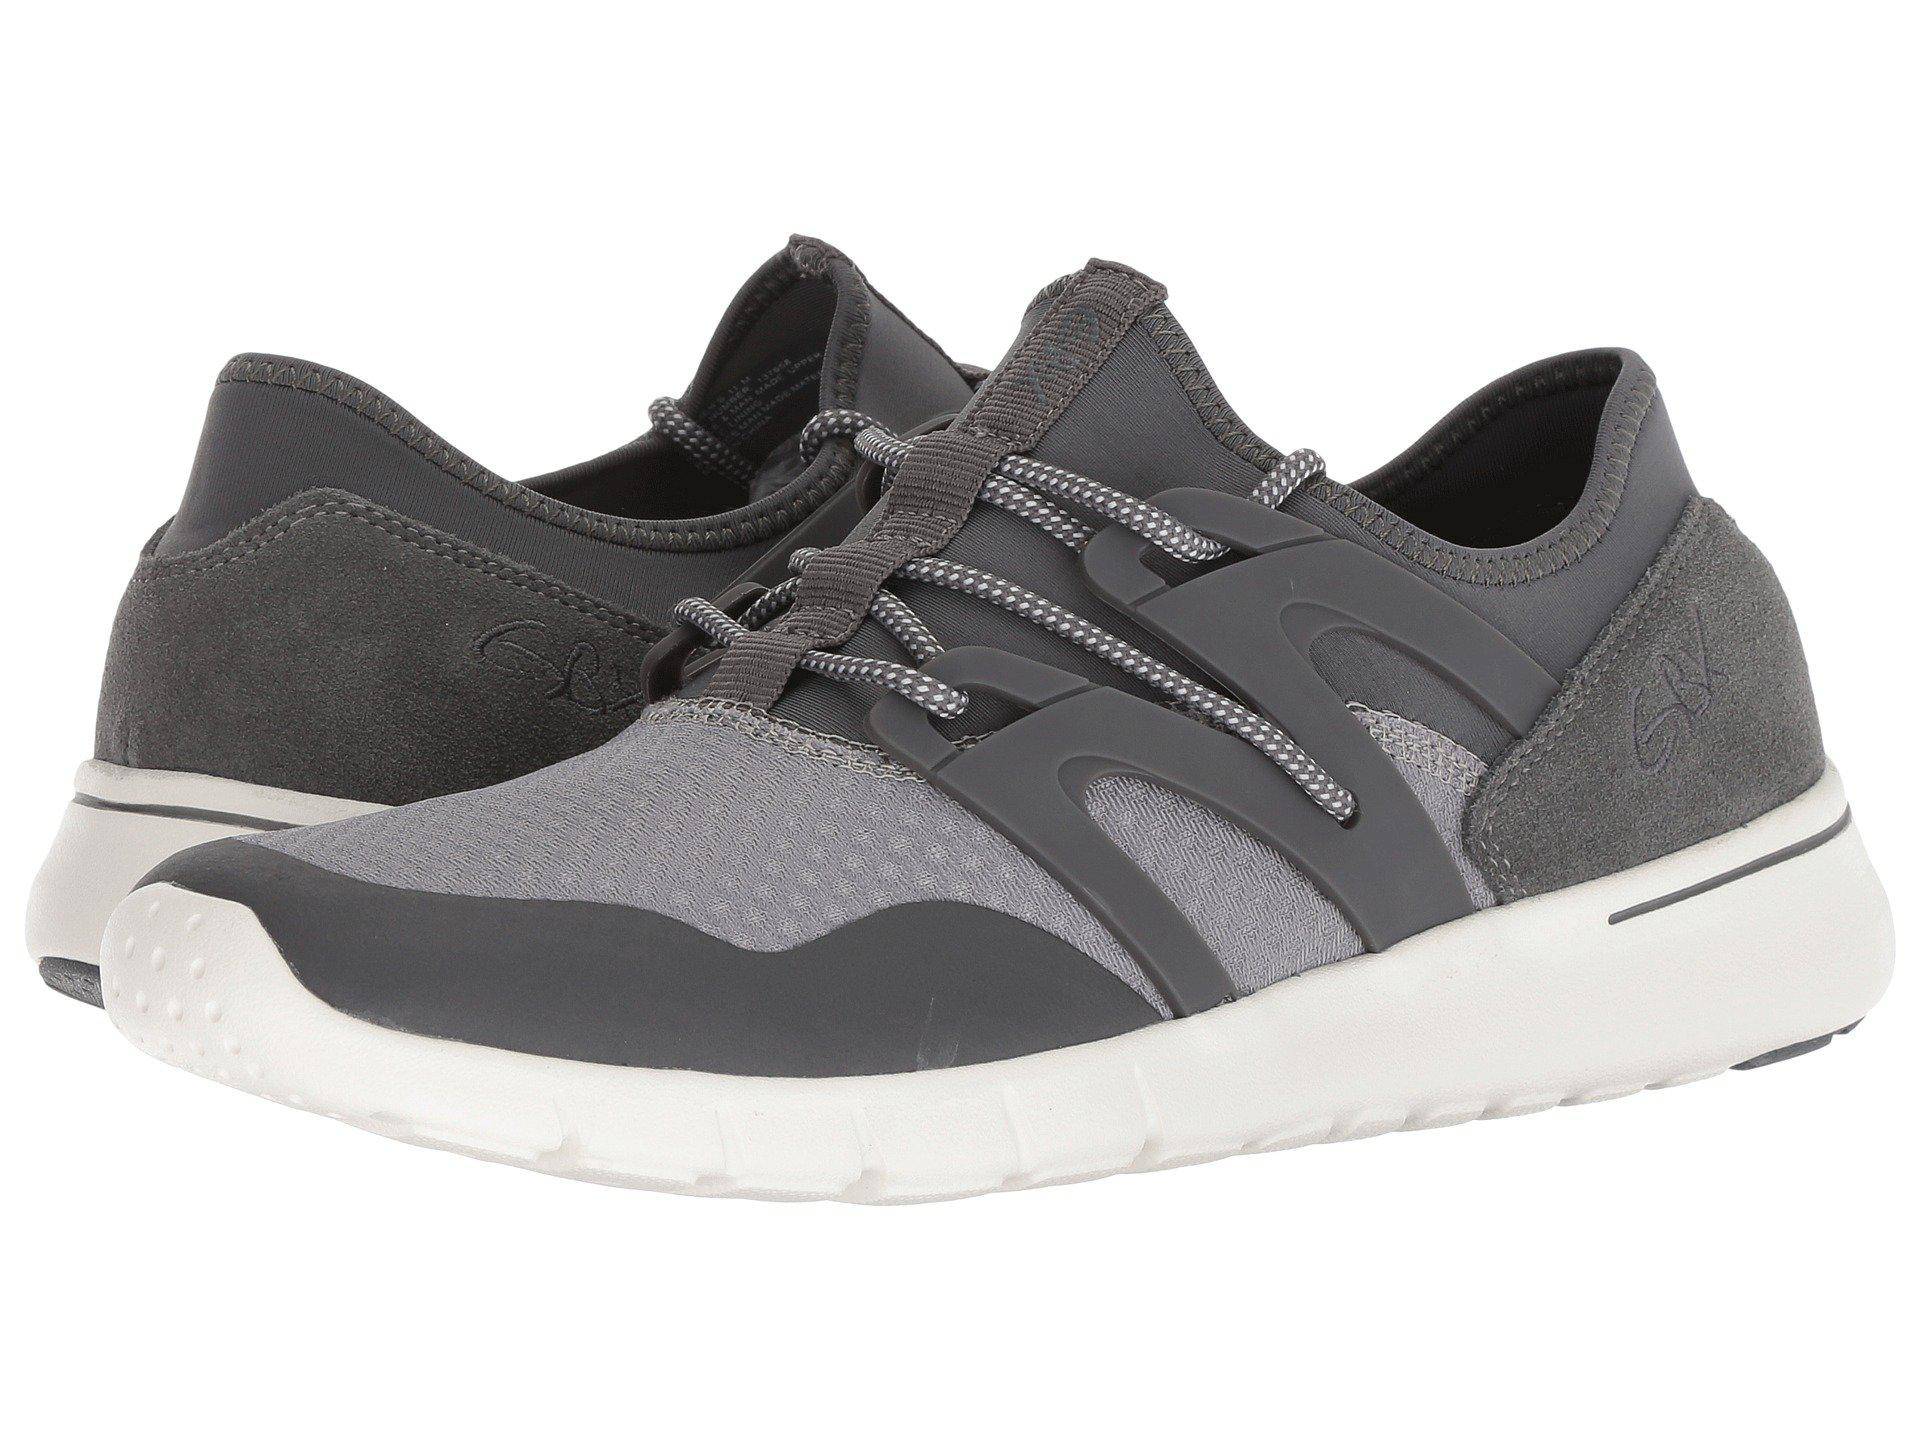 89a8f488820 Lyst - Gbx Avalon in Gray for Men